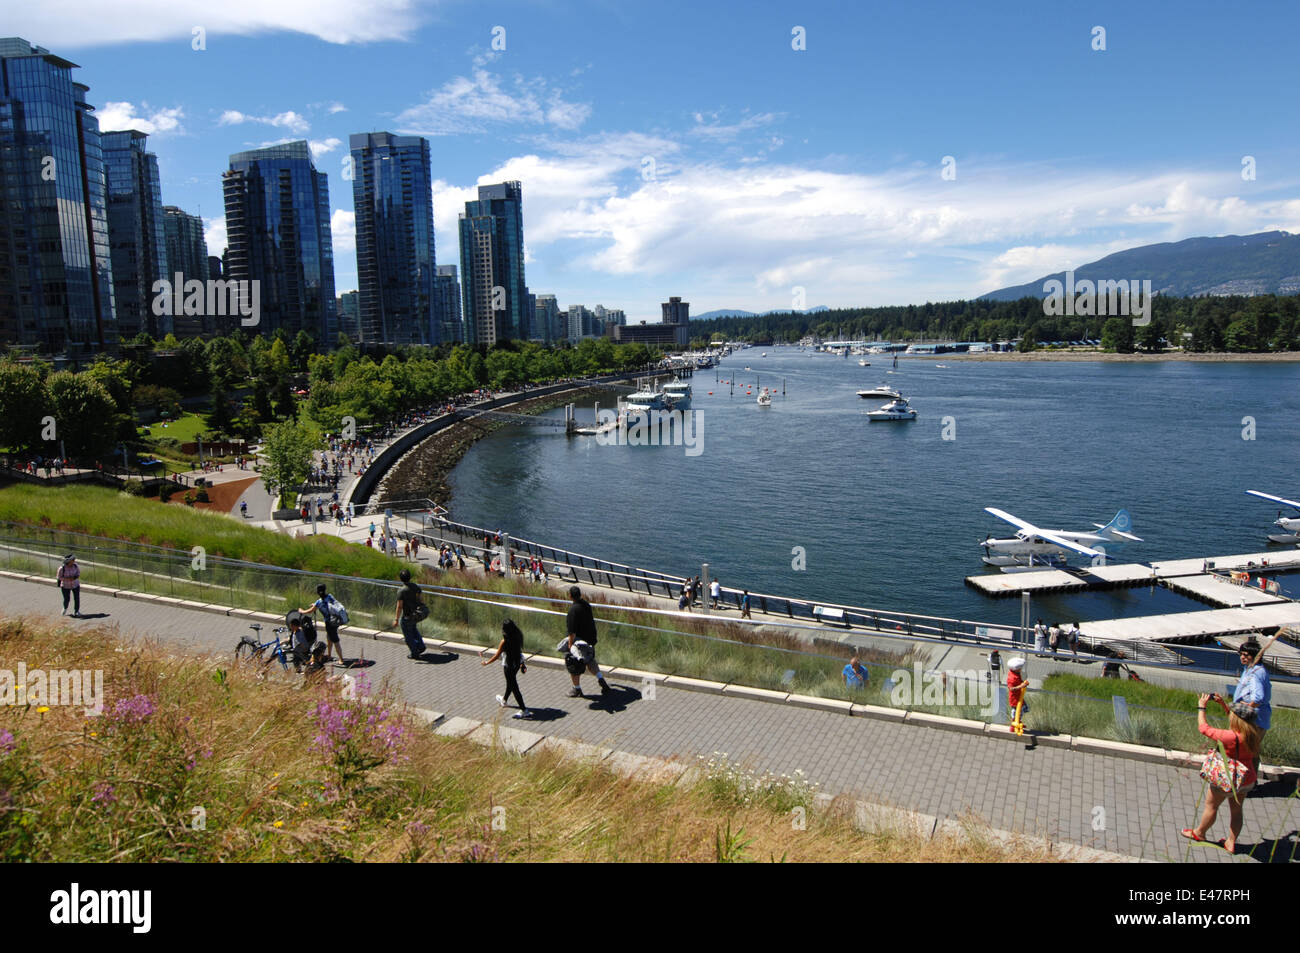 Vancouver. 4th July, 2014. Photo taekn on July 4, 2014 shows the view of Coal Harbour area in Vancouver, Canada. - Stock Image